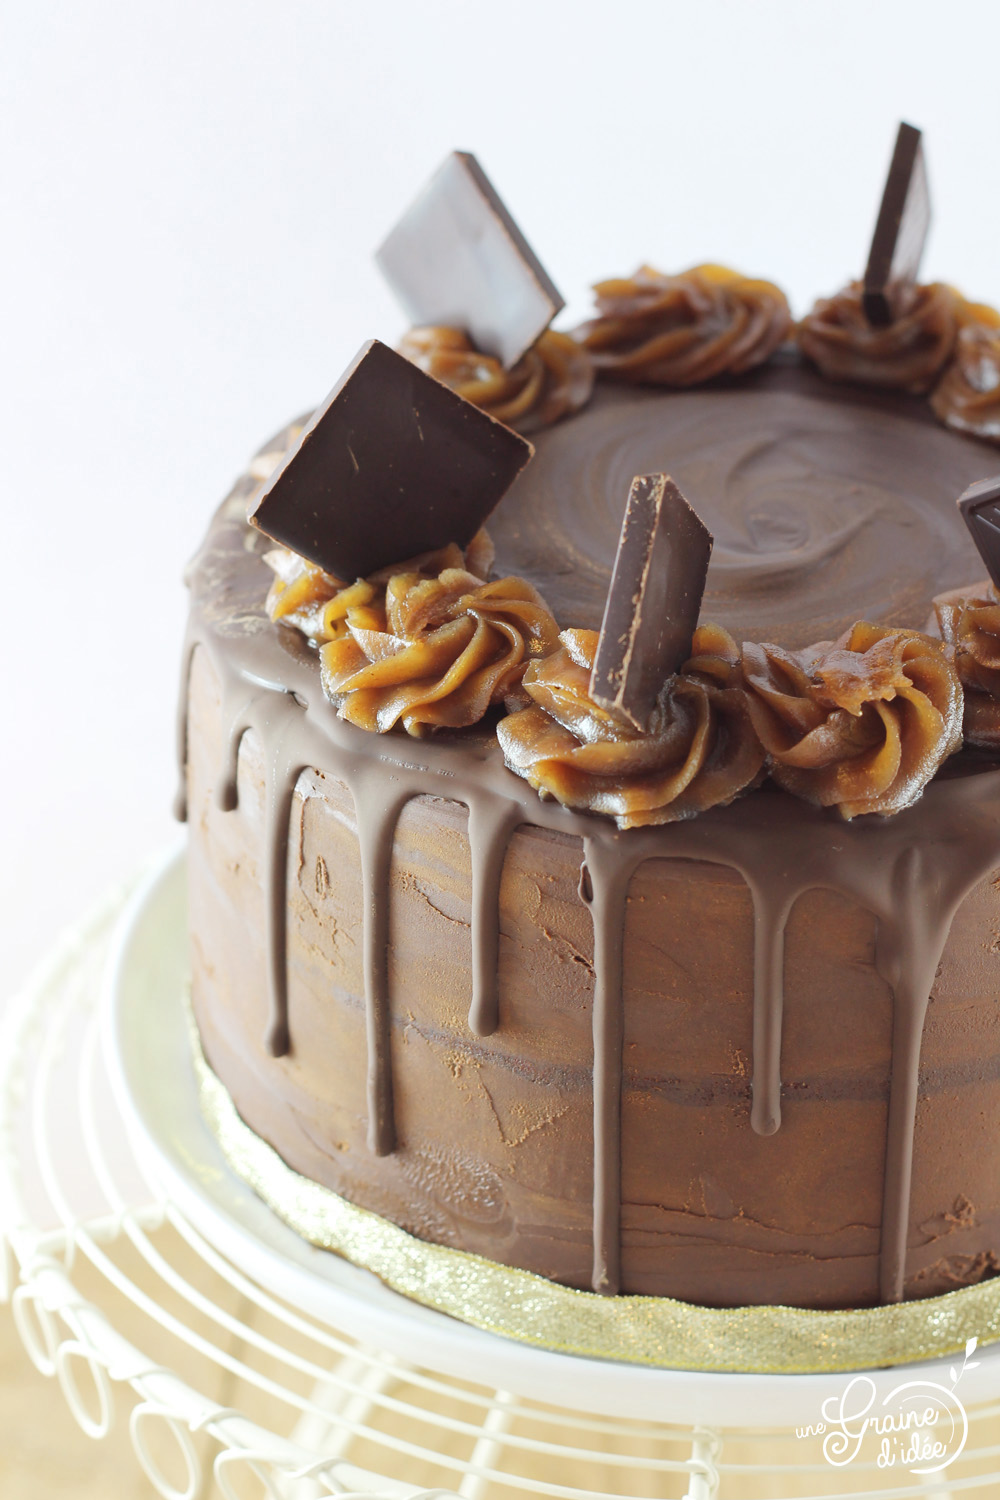 Idee Decoration Gateau Au Chocolat Layer Cake Chocolat Corsé Et Crème De Marrons Une Graine D